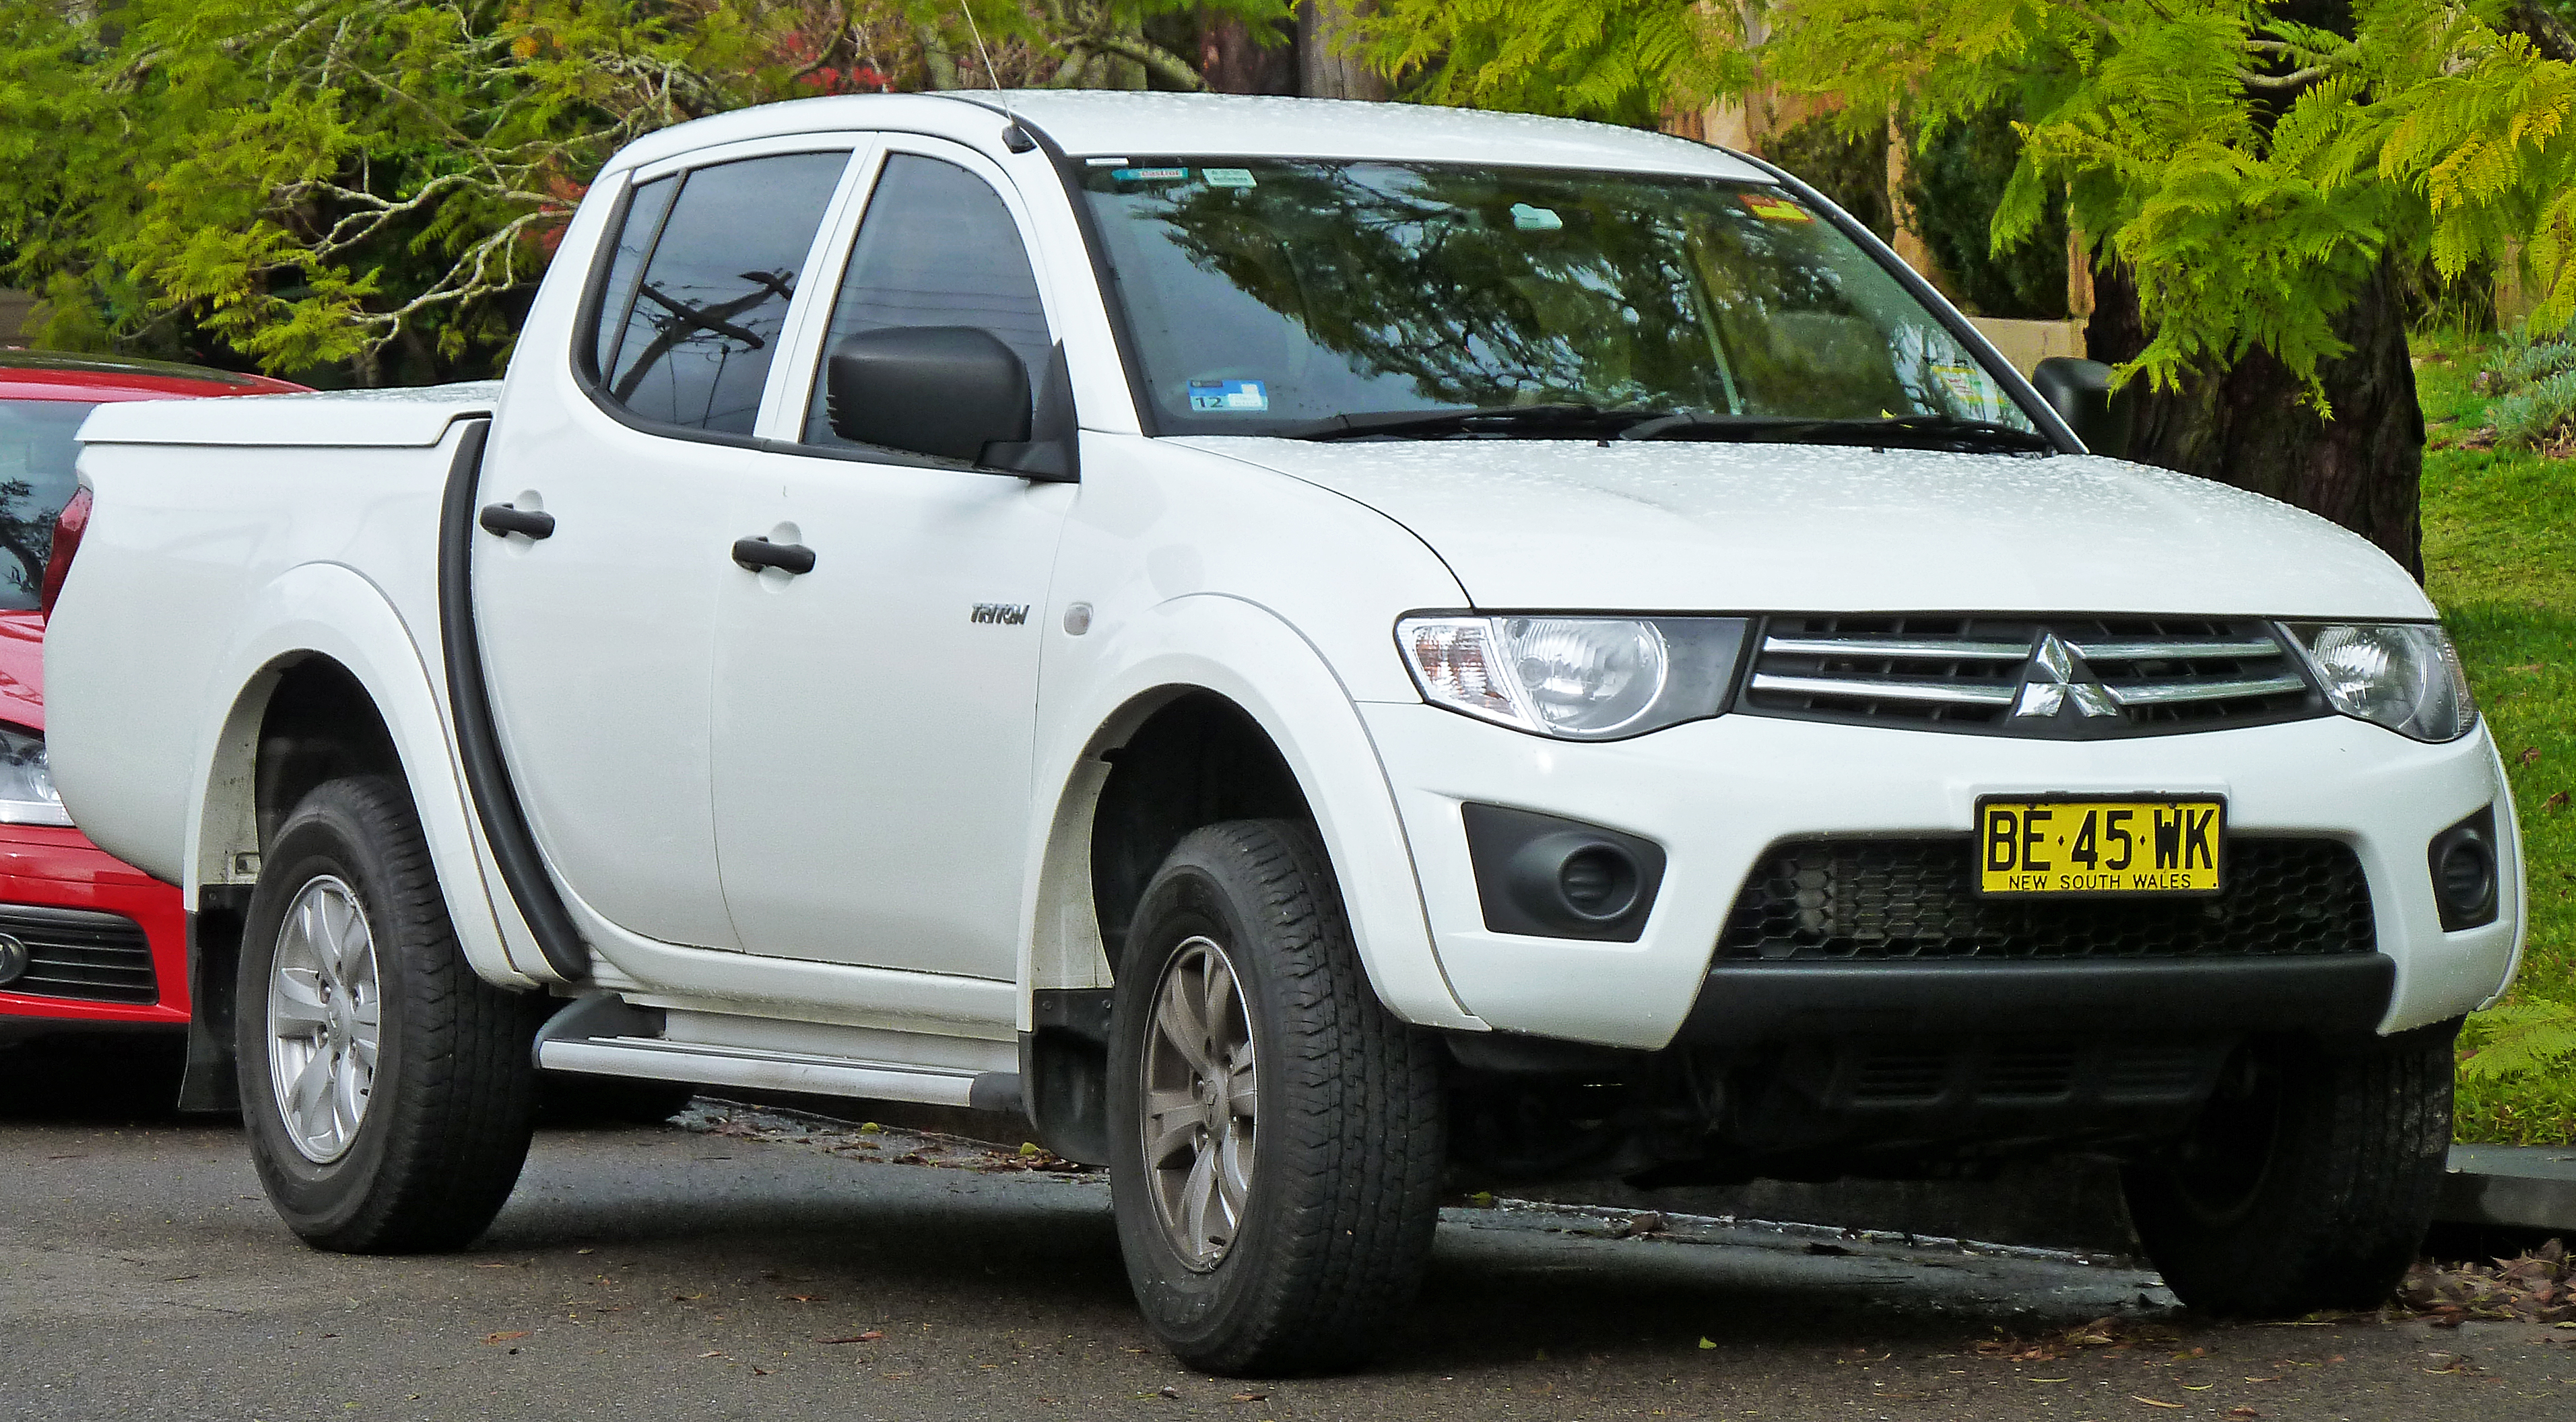 mitsubishi triton series otomobil full trucks all is launched nationwide generation pickup may at otoreview my the truck and l of review officially this new